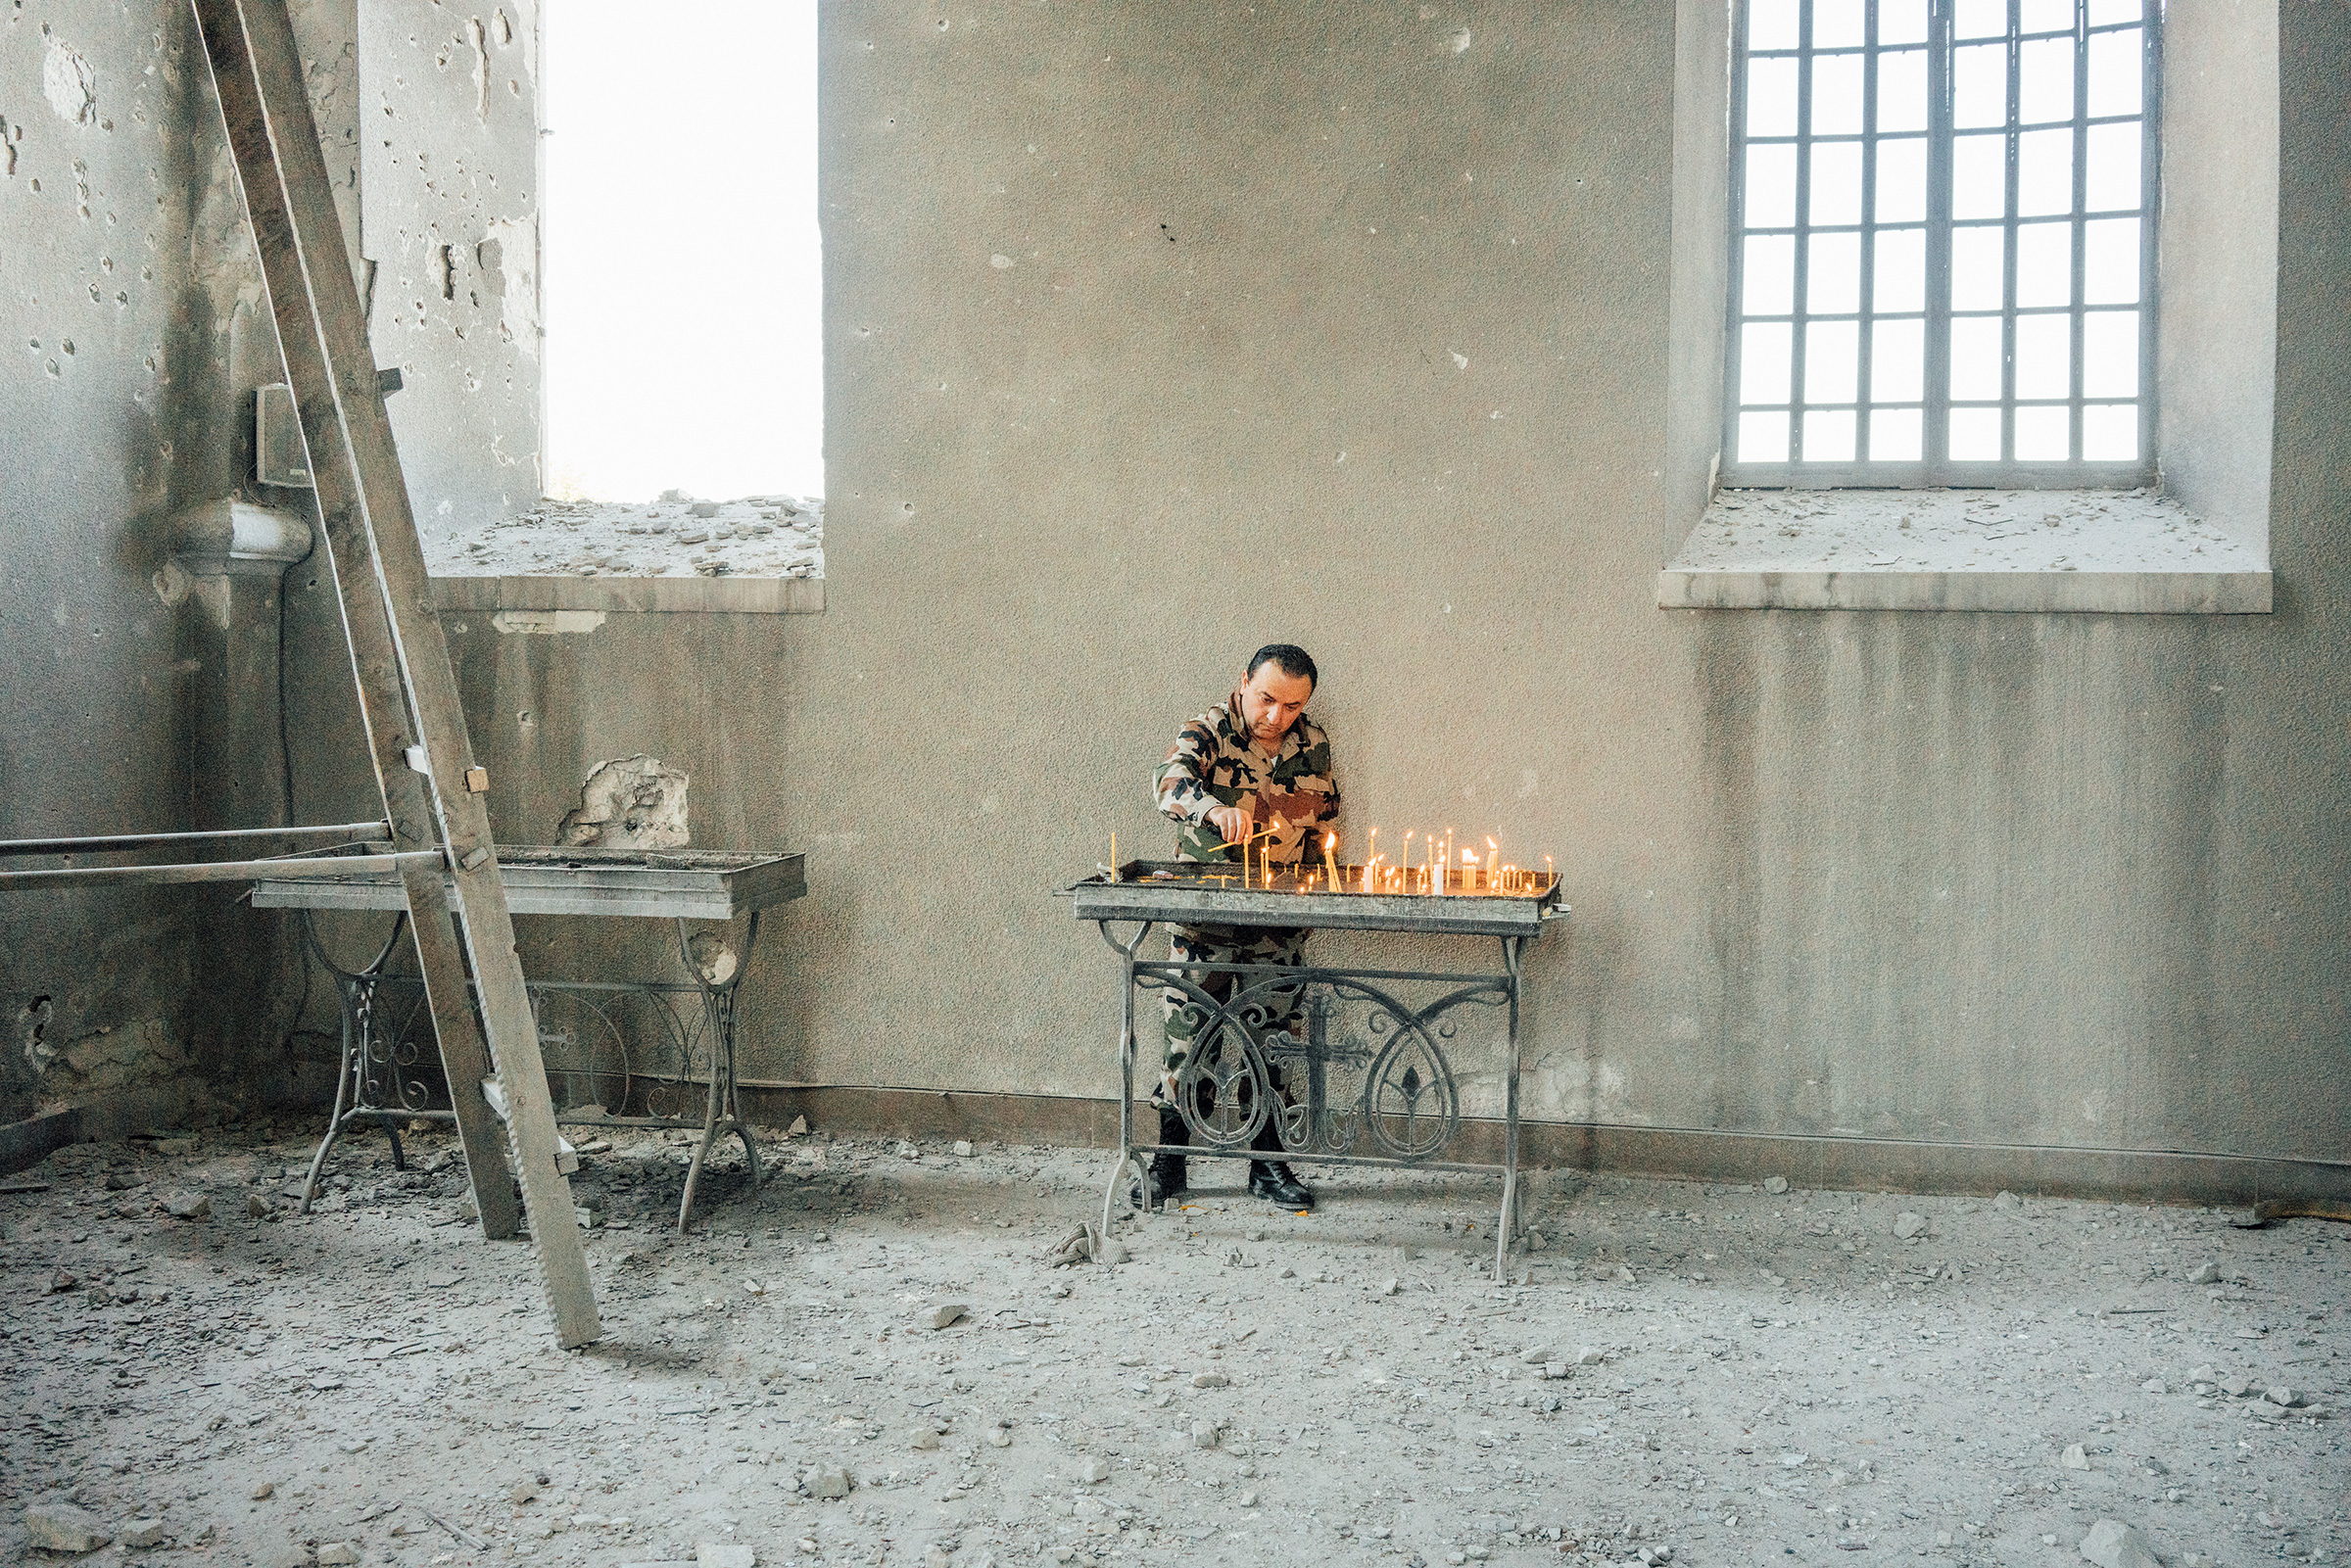 An Armenian soldier lights candles inside the Holy Savior Cathedral, which was damaged by shelling, in the town of Shusha outside Stepanakert.